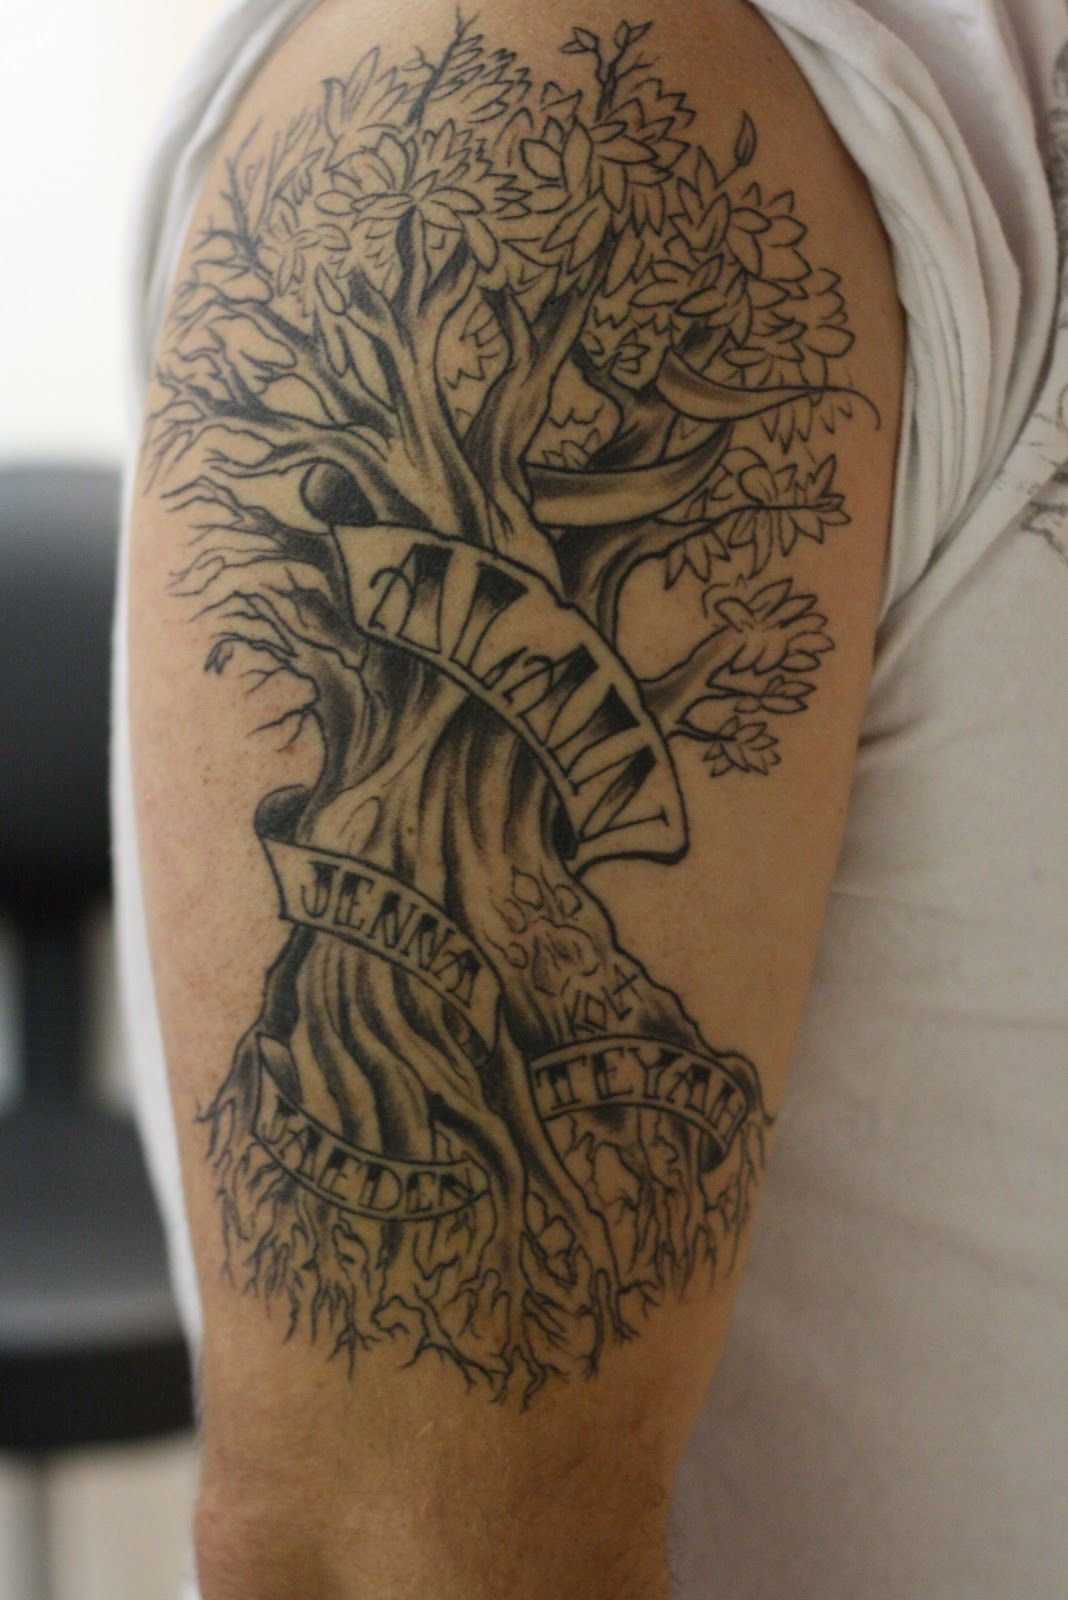 69 meaningful family tattoos designs mens craze - Family Tattoos Design Ideas For Men And Women